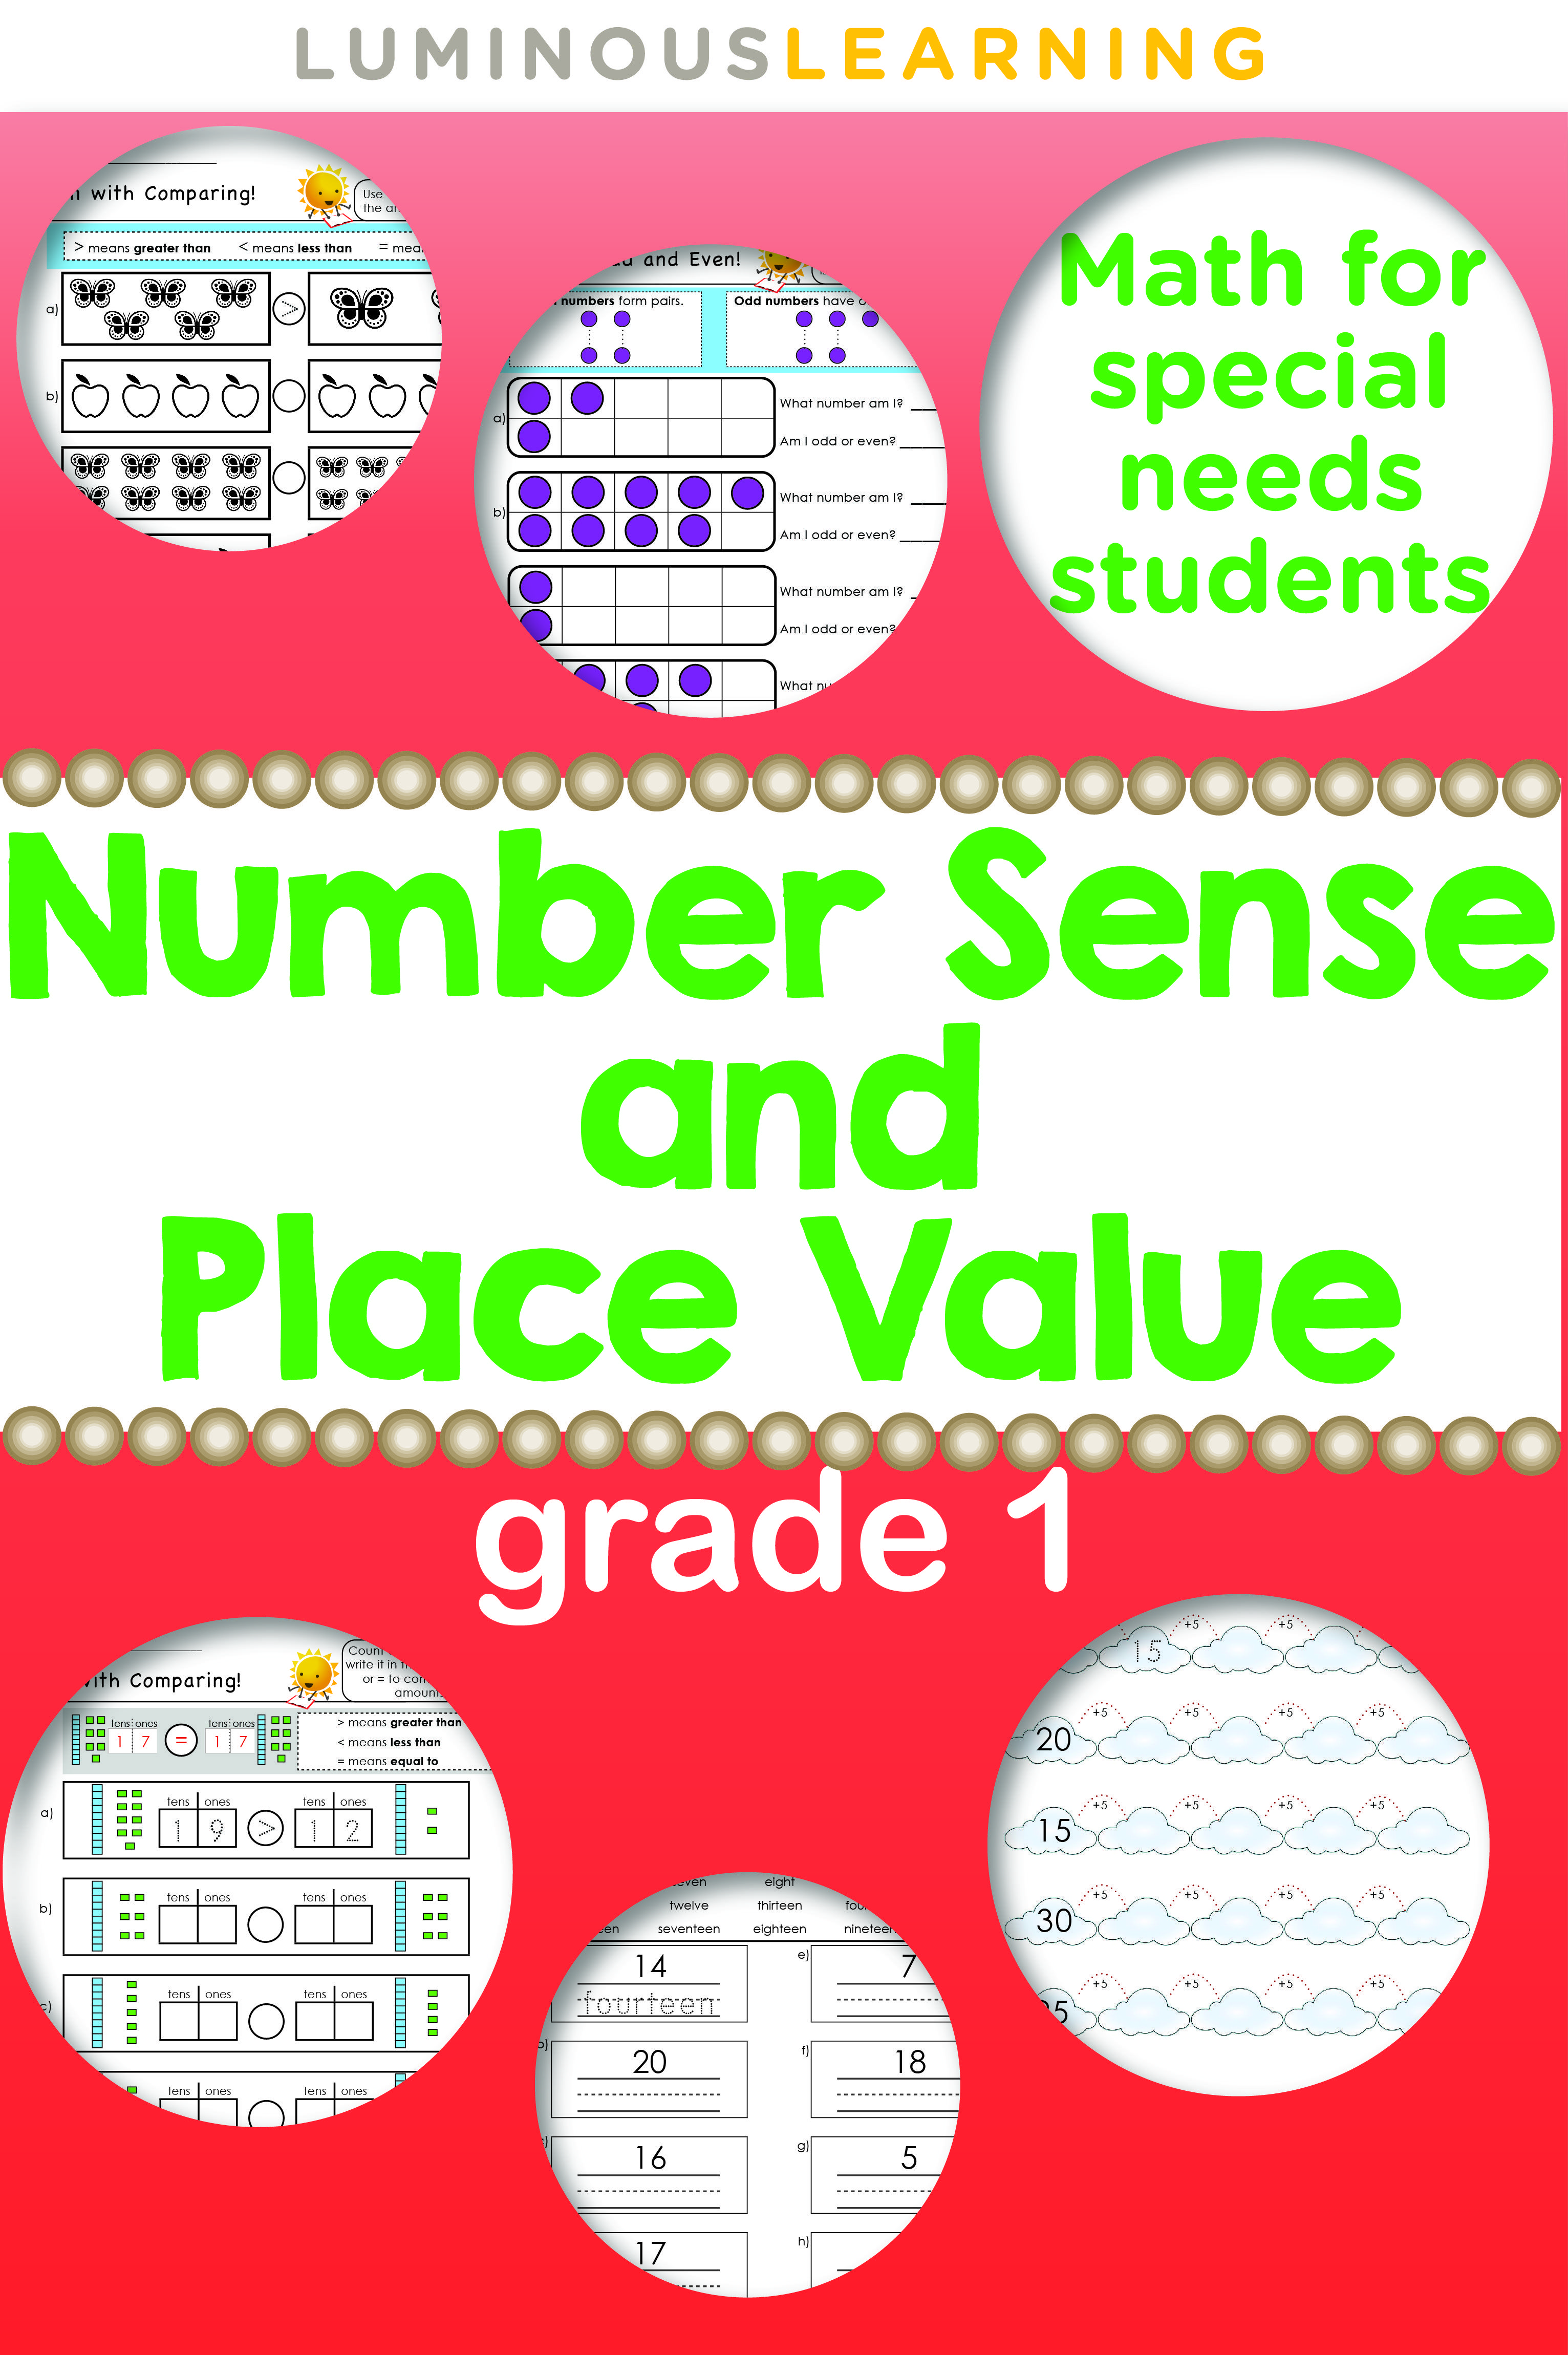 Luminous Learning Grade 1 Number Sense And Place Value